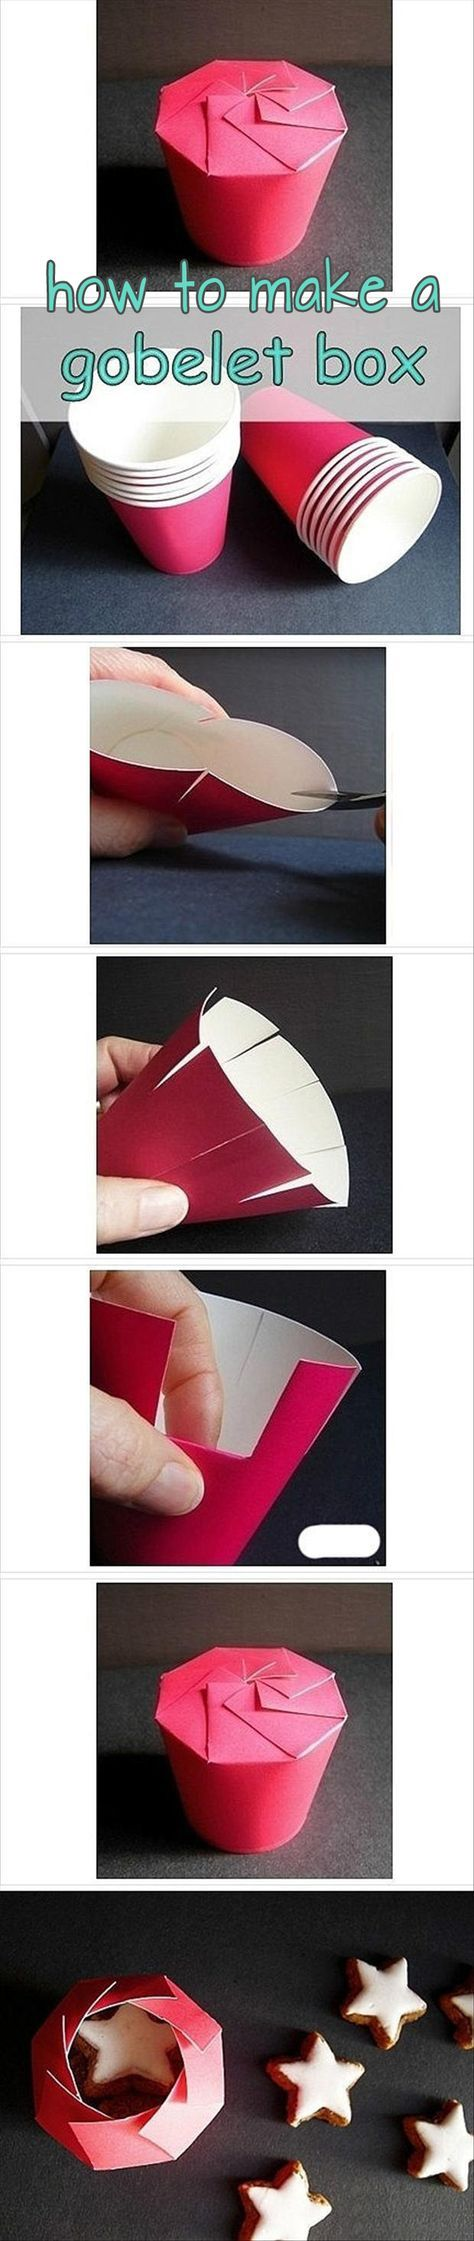 Simple do it yourself craft ideas 52 pics messages origami and simple do it yourself craft ideas 52 pics solutioingenieria Choice Image